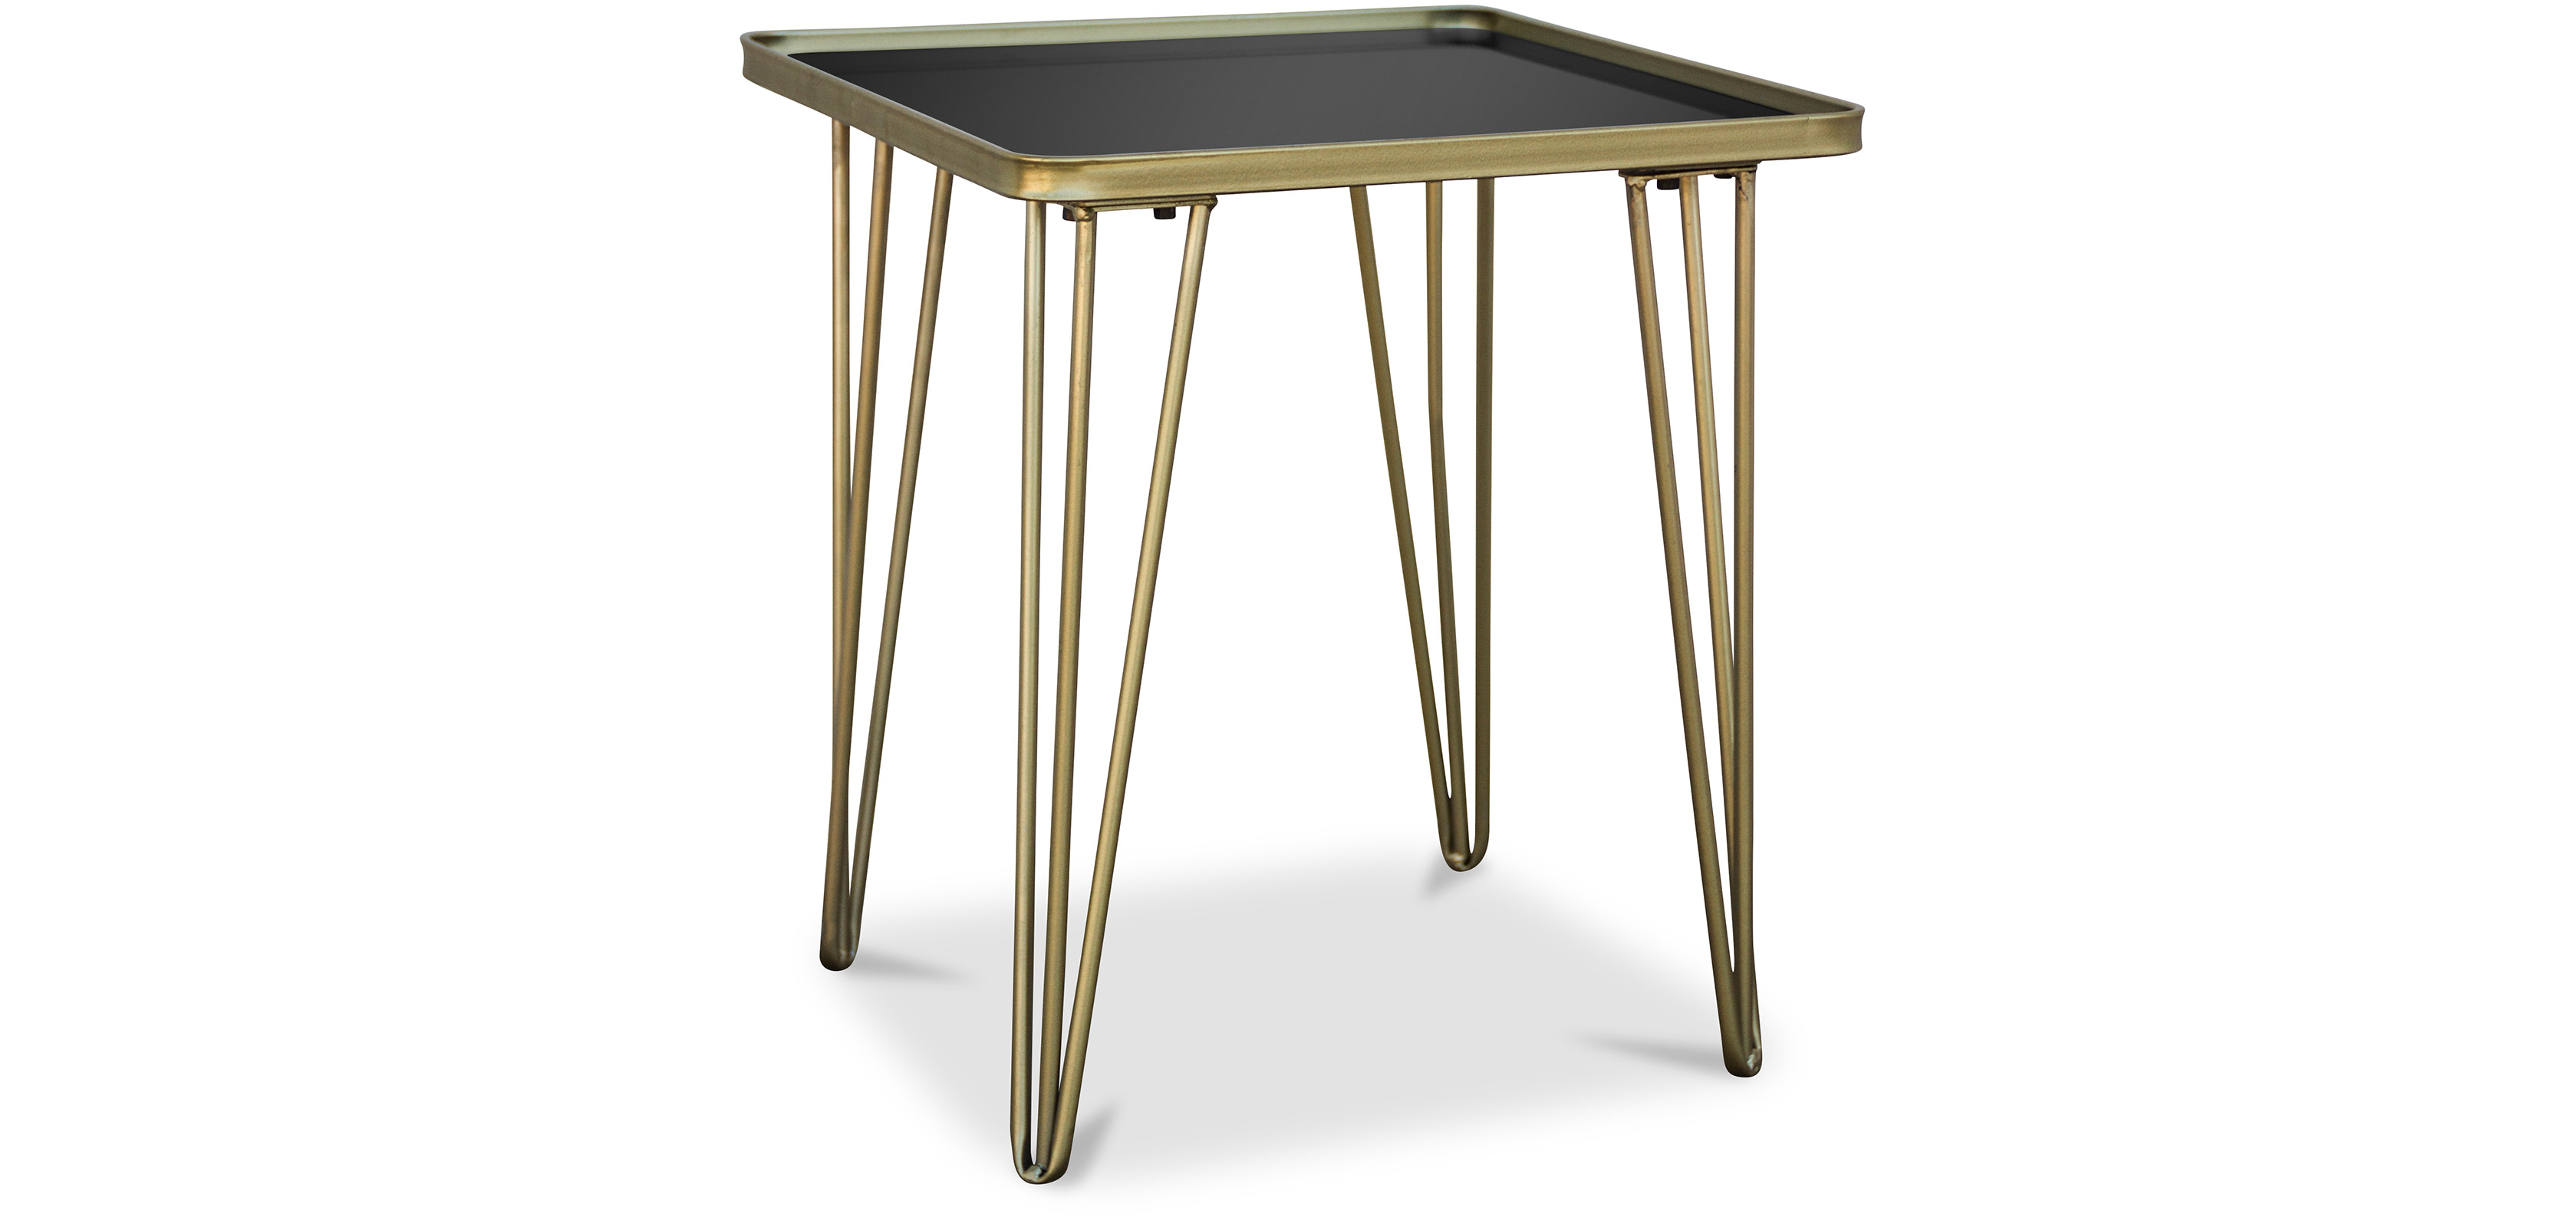 6406 Incroyable De Table Basse Gigogne Conforama